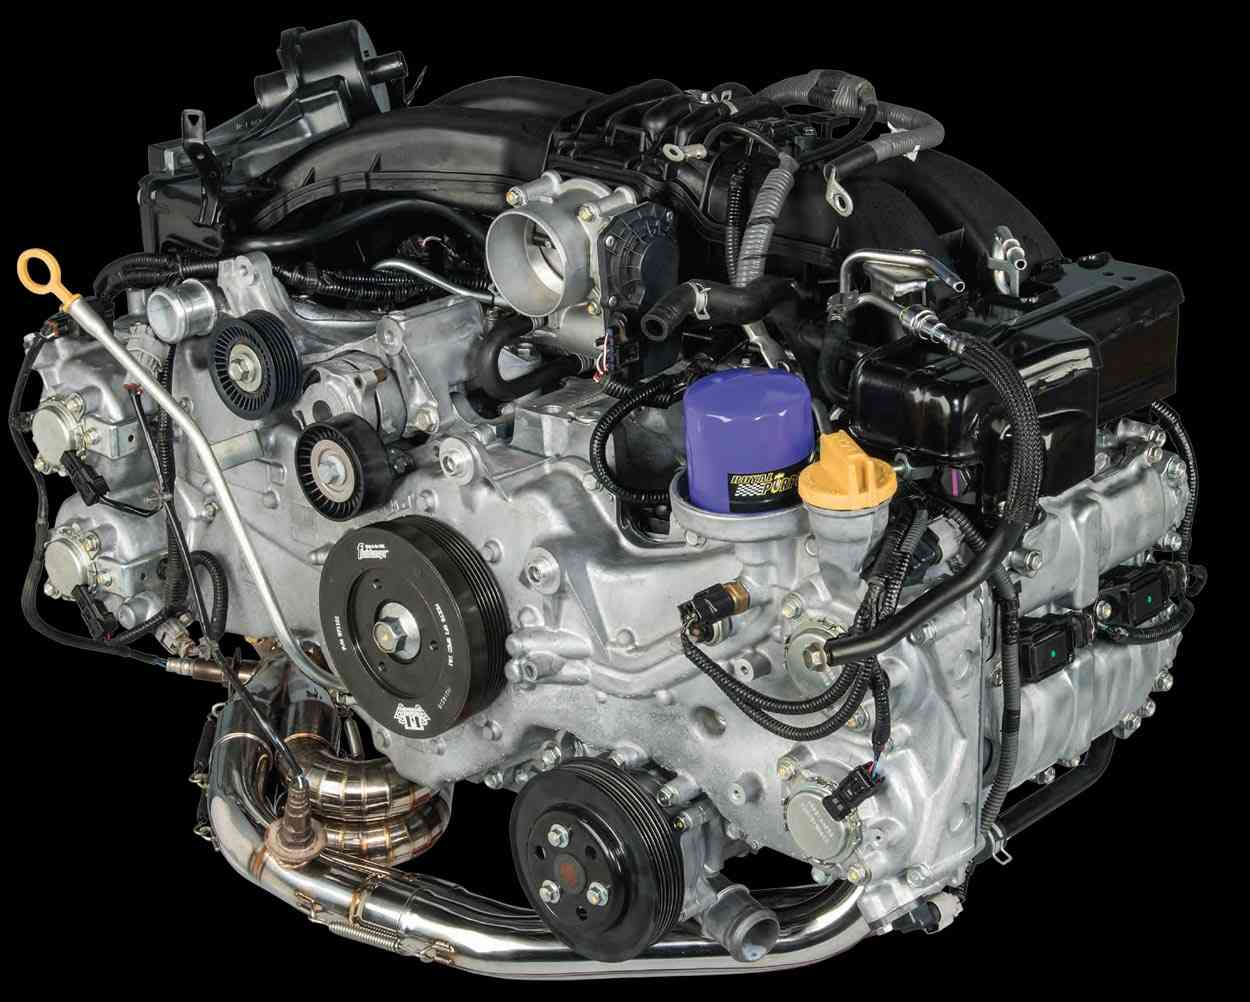 LASLEEVE BRZ Project Engine view